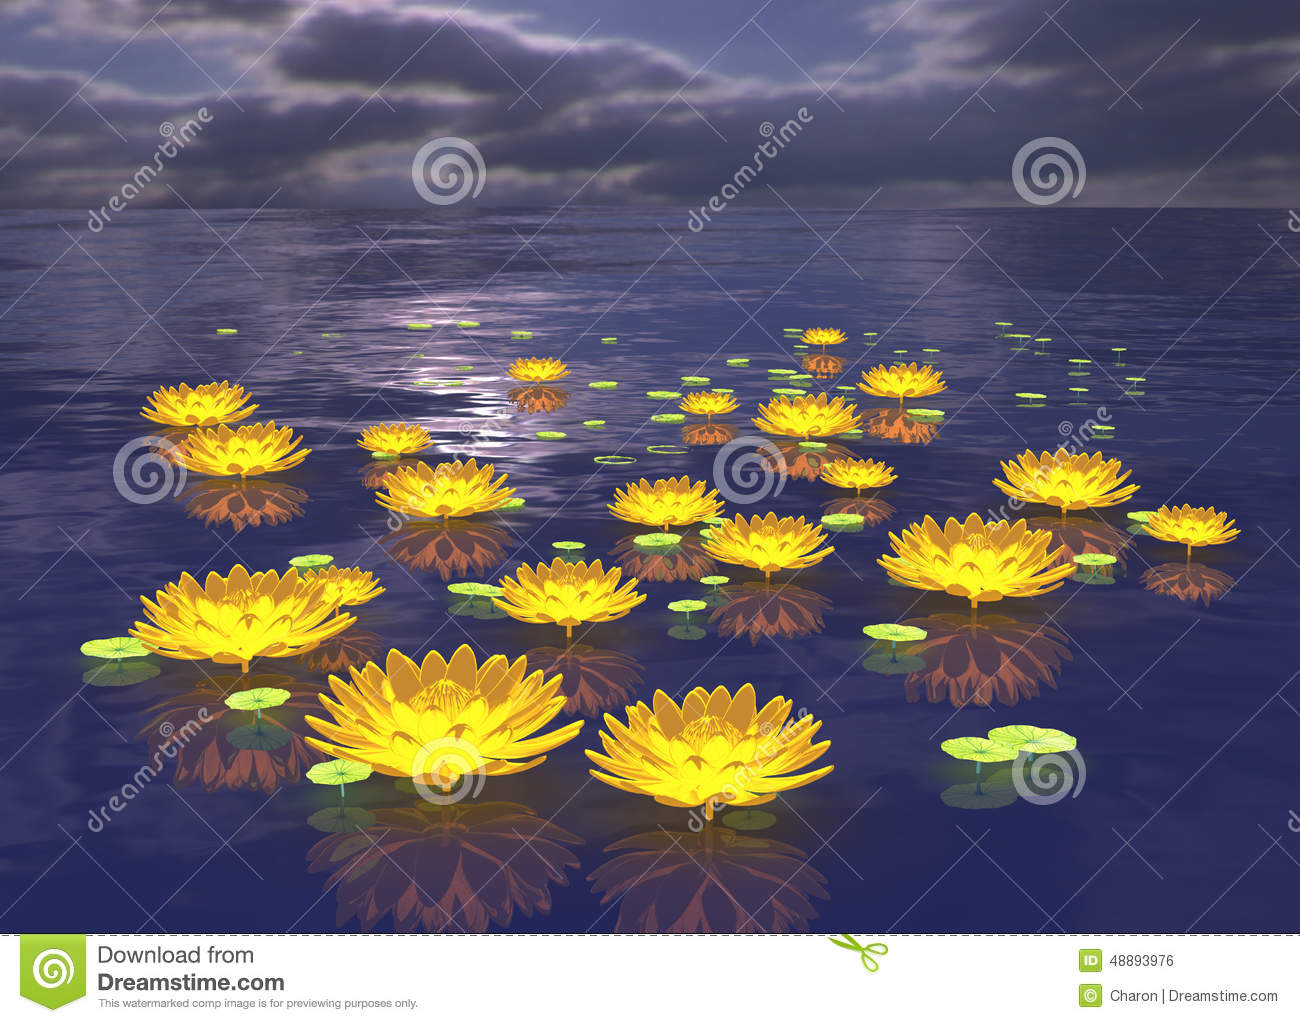 Lotus flower glowing lily water background illustration 48893976 lotus flower glowing lily water background illustration 48893976 megapixl mightylinksfo